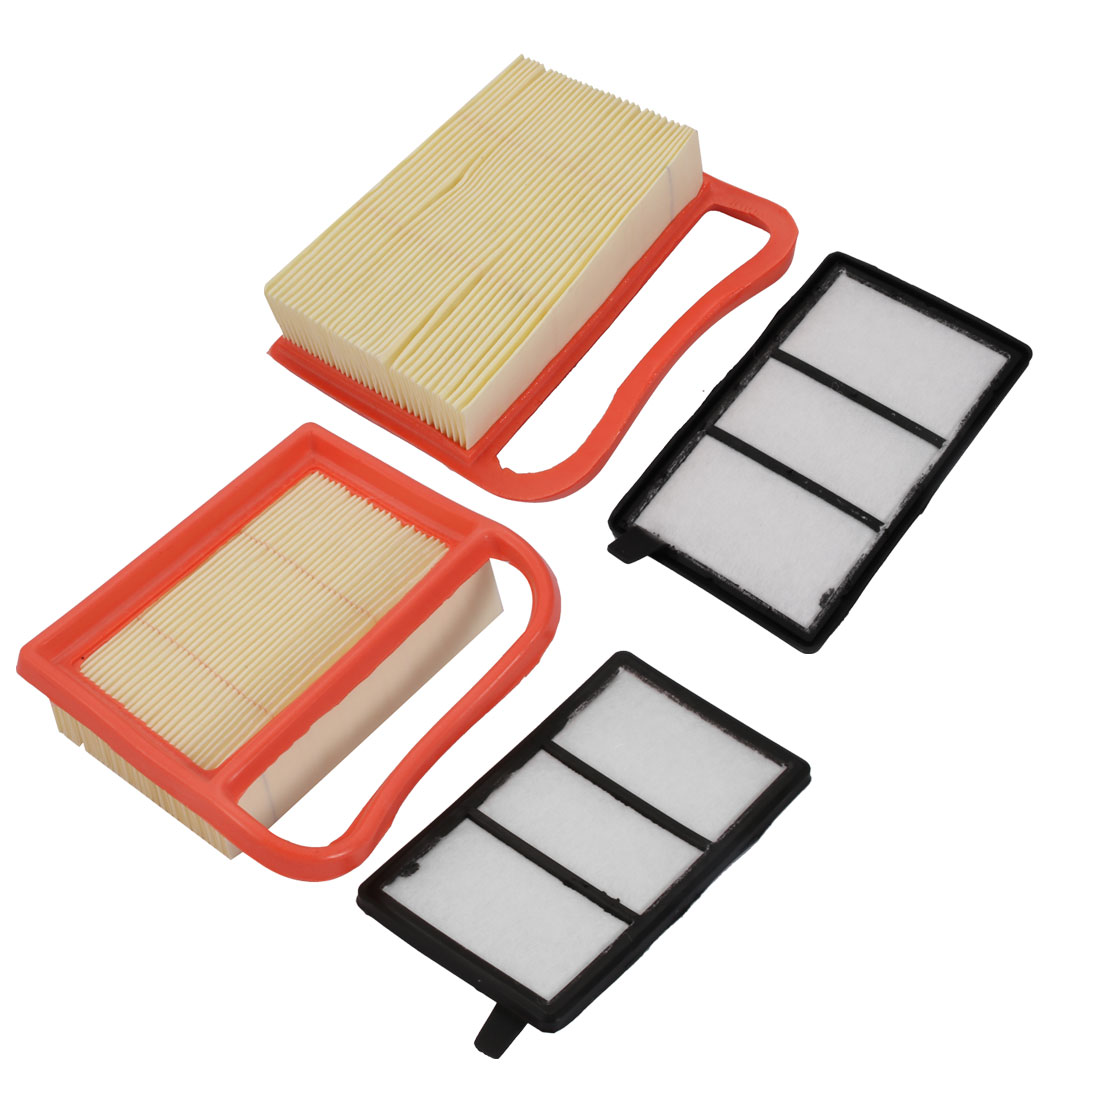 2pcs Replacement Extra Guard Panel Engine TS410 Air Filter Cleaner Accessory